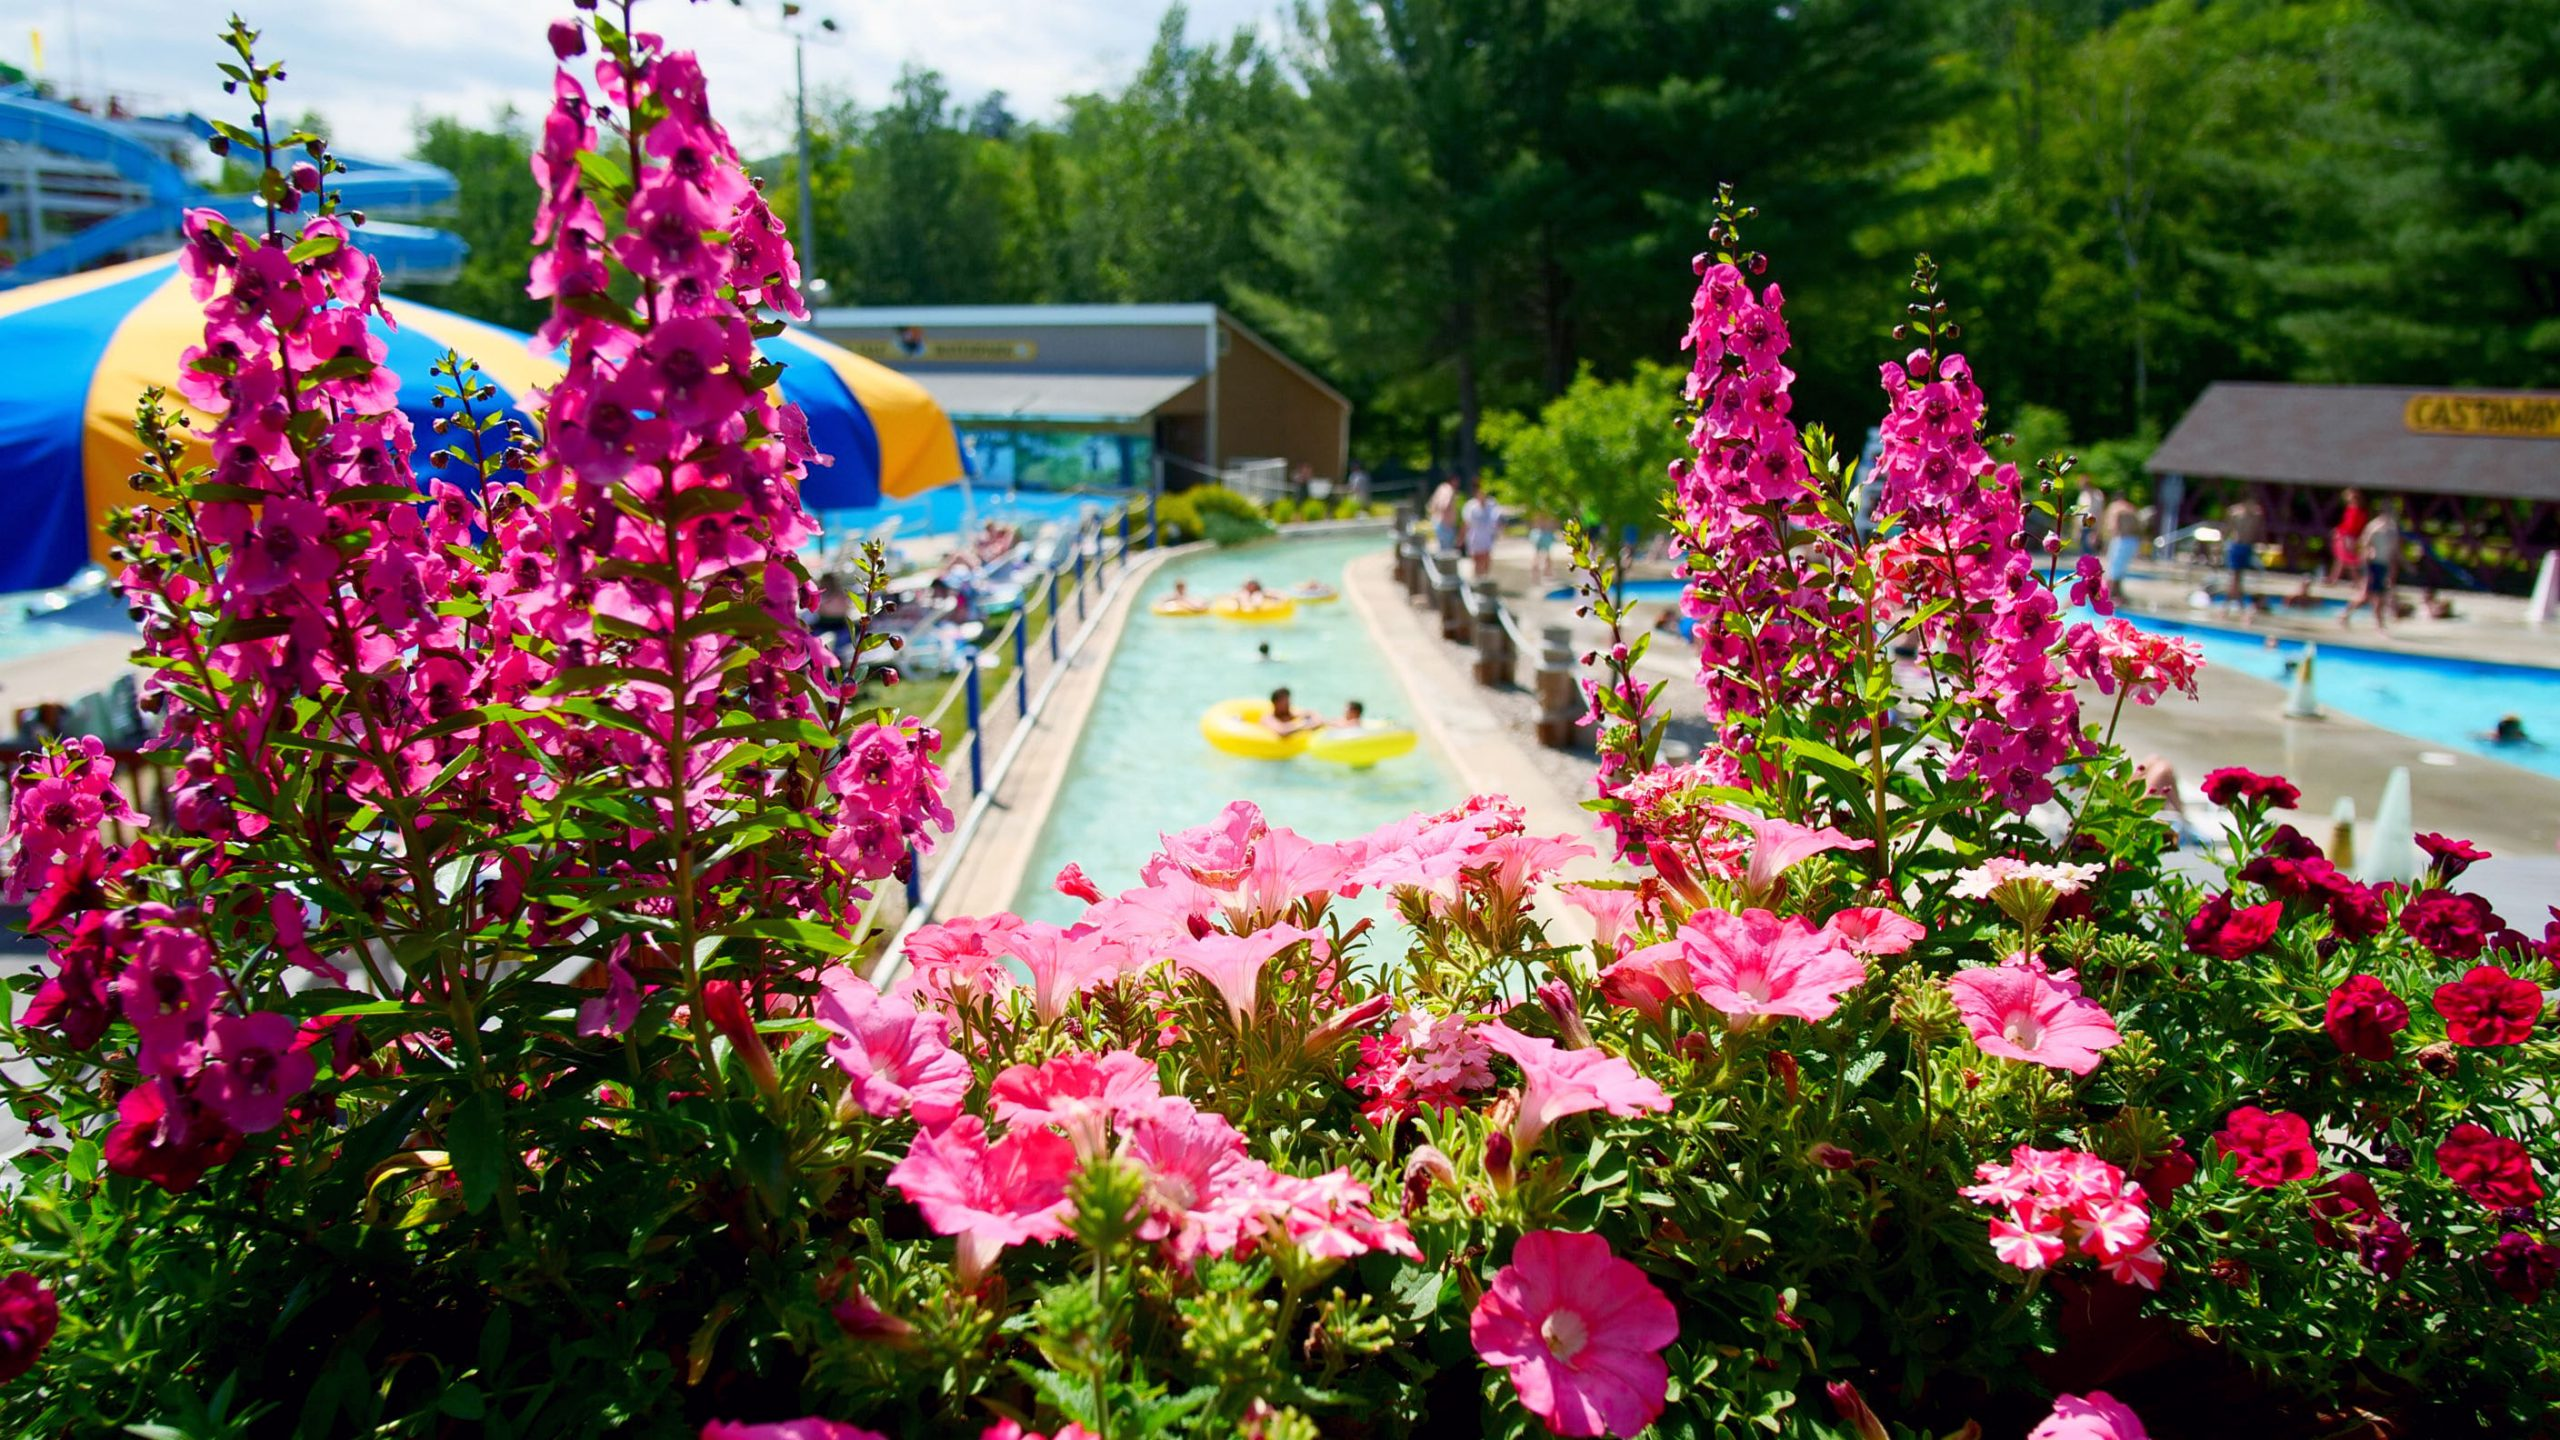 Flowers with Lazy River in the Background